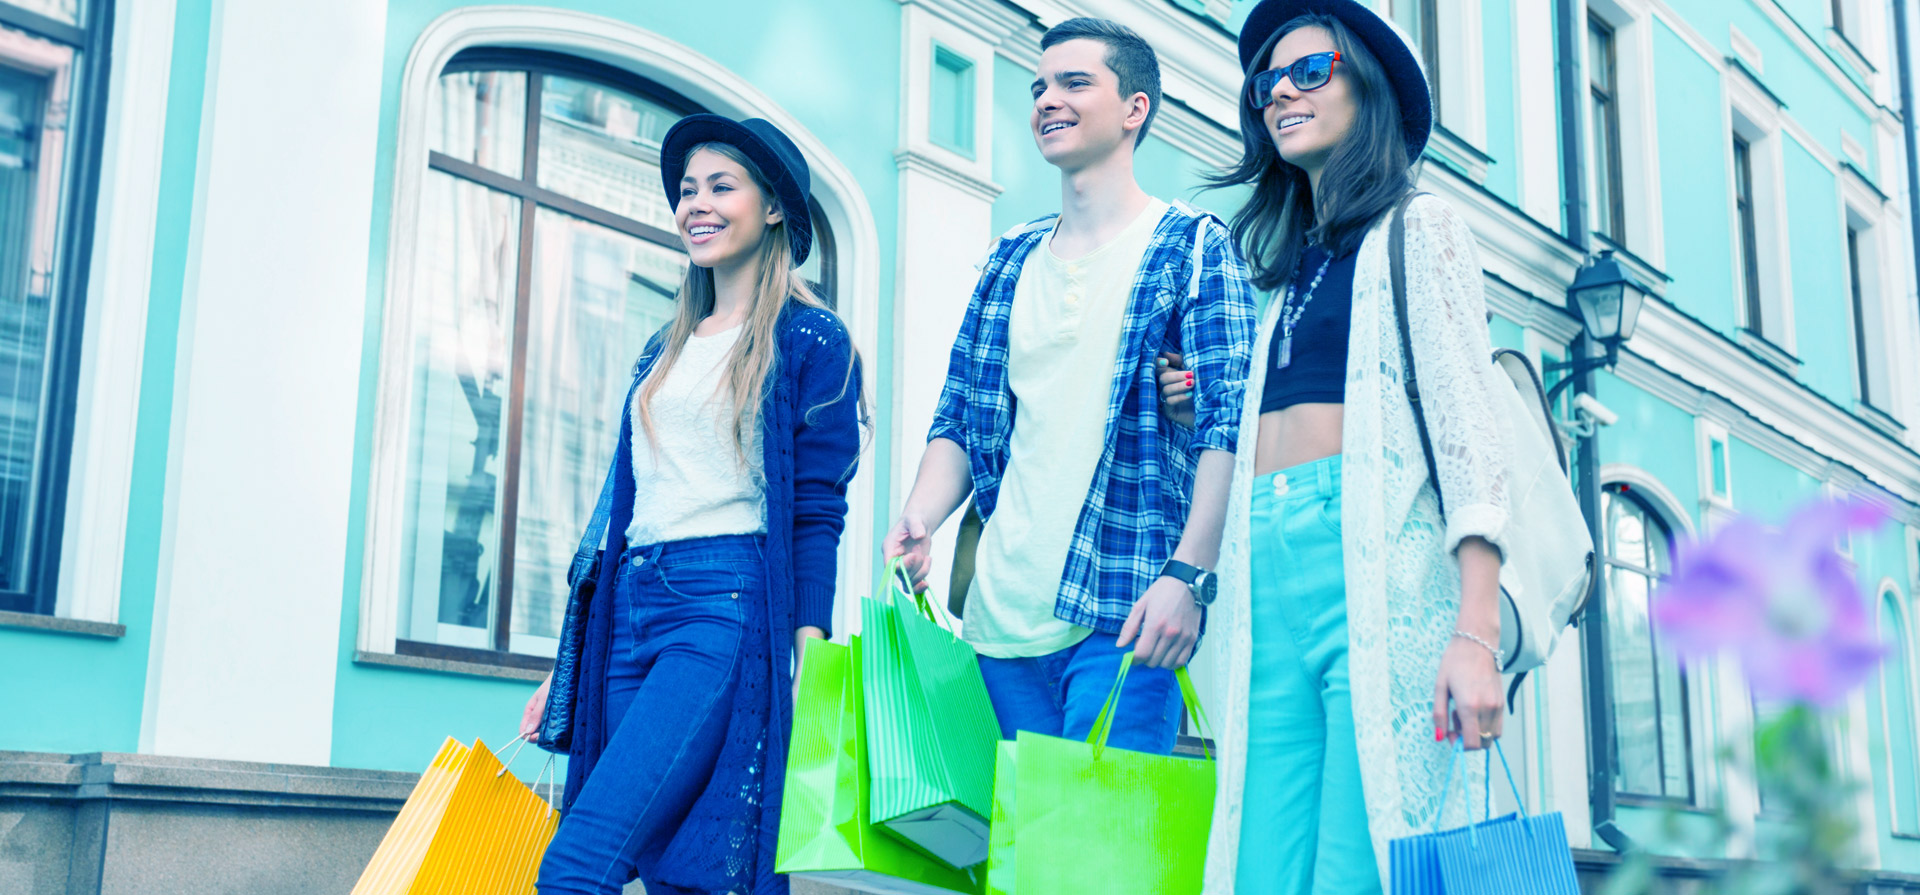 The Factors of Complete Customer Experience